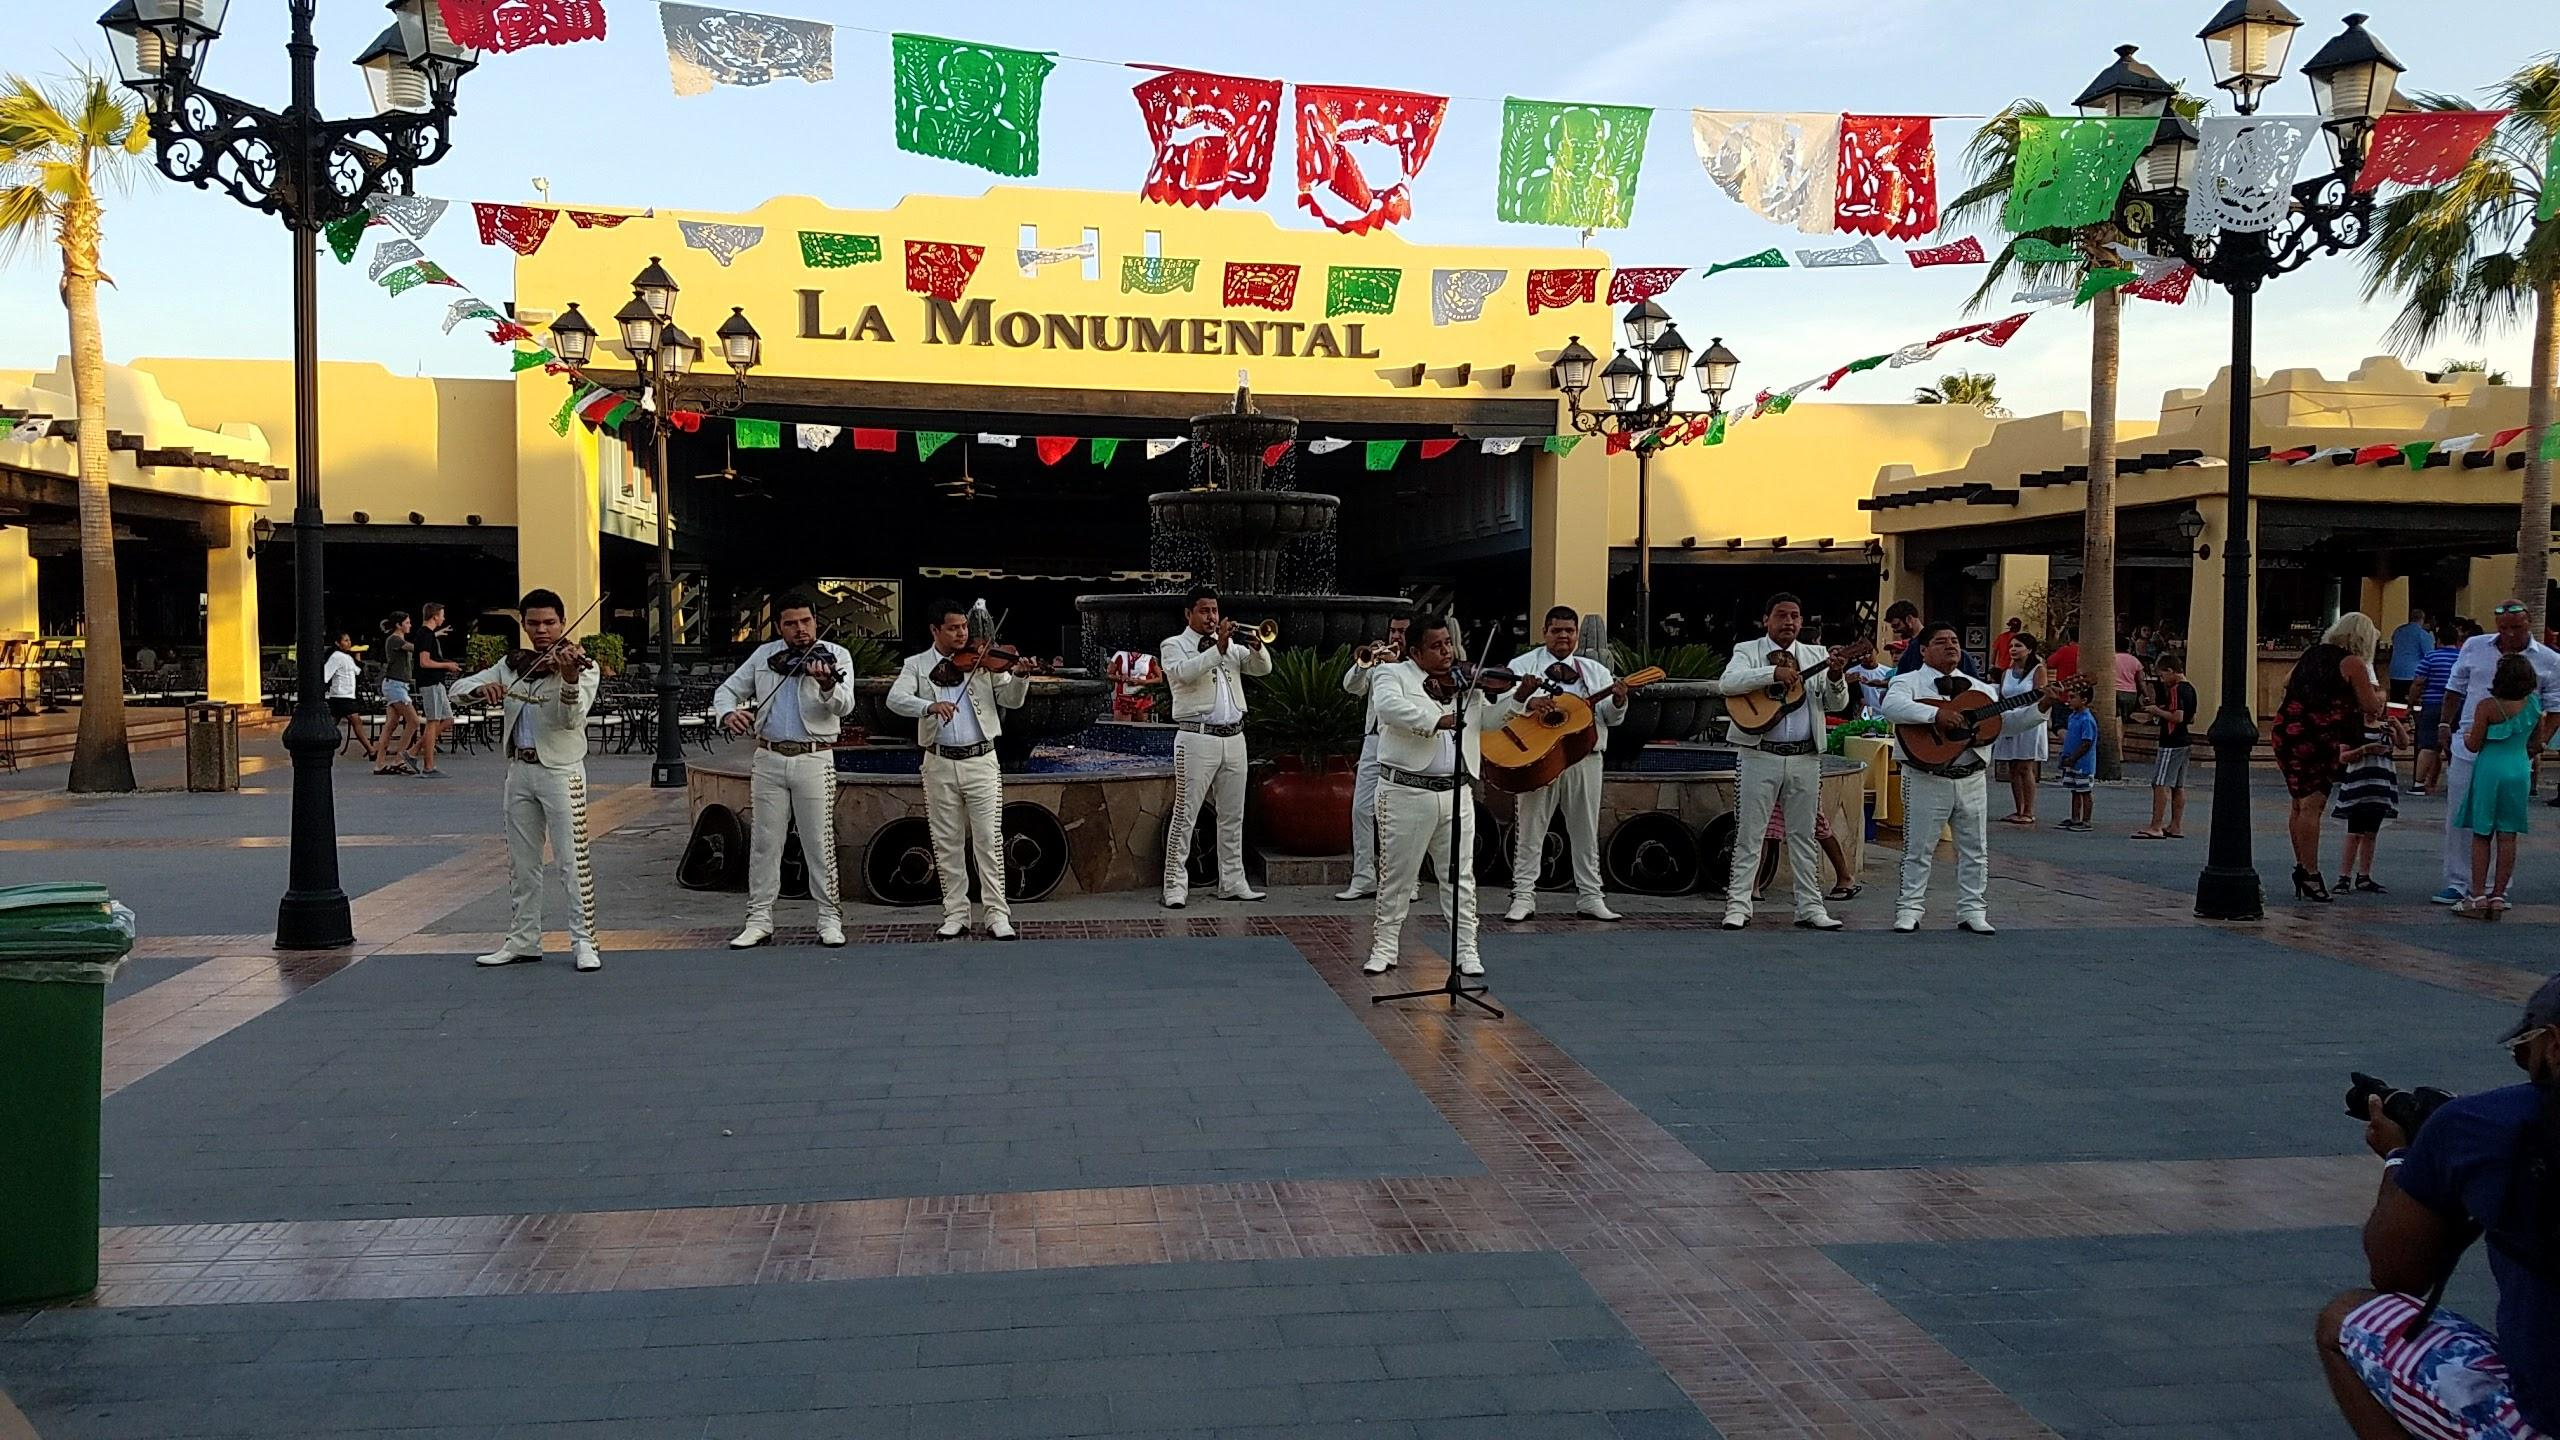 Mexican fiesta night. Great mariachi and activities for the kids.